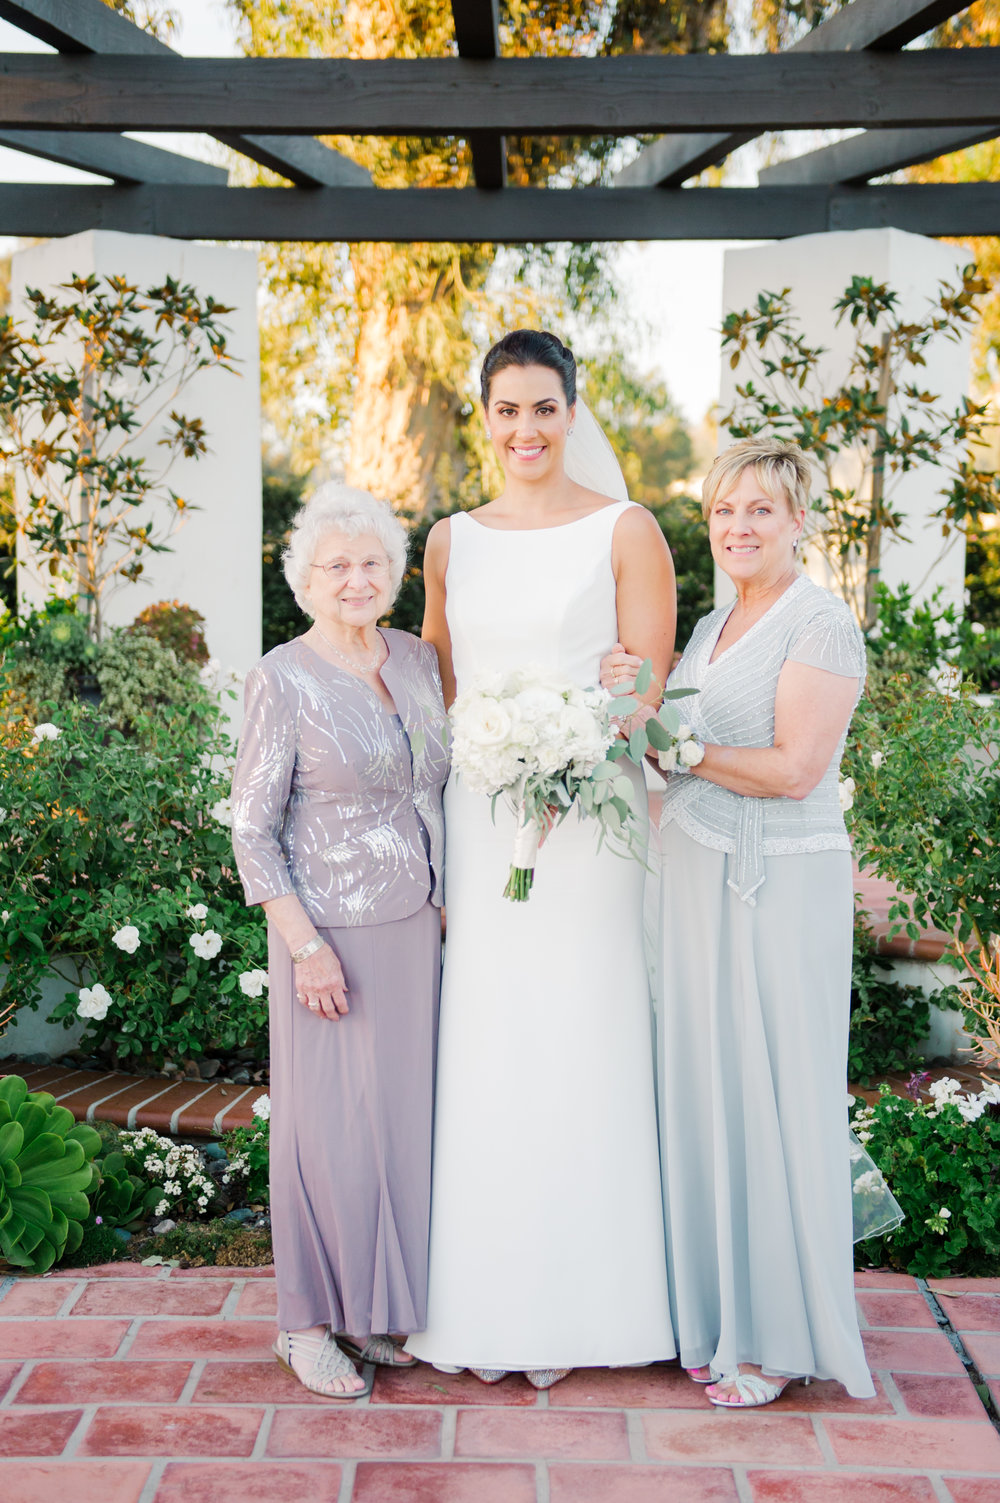 Three generations wedding photo by Taryn Grey Photography. Bride with mother of the bride and grandmother of the bride. Wedding hair and makeup by Vanity Belle in Orange County (Costa Mesa) and San Diego (La Jolla) thevanitybelle.com